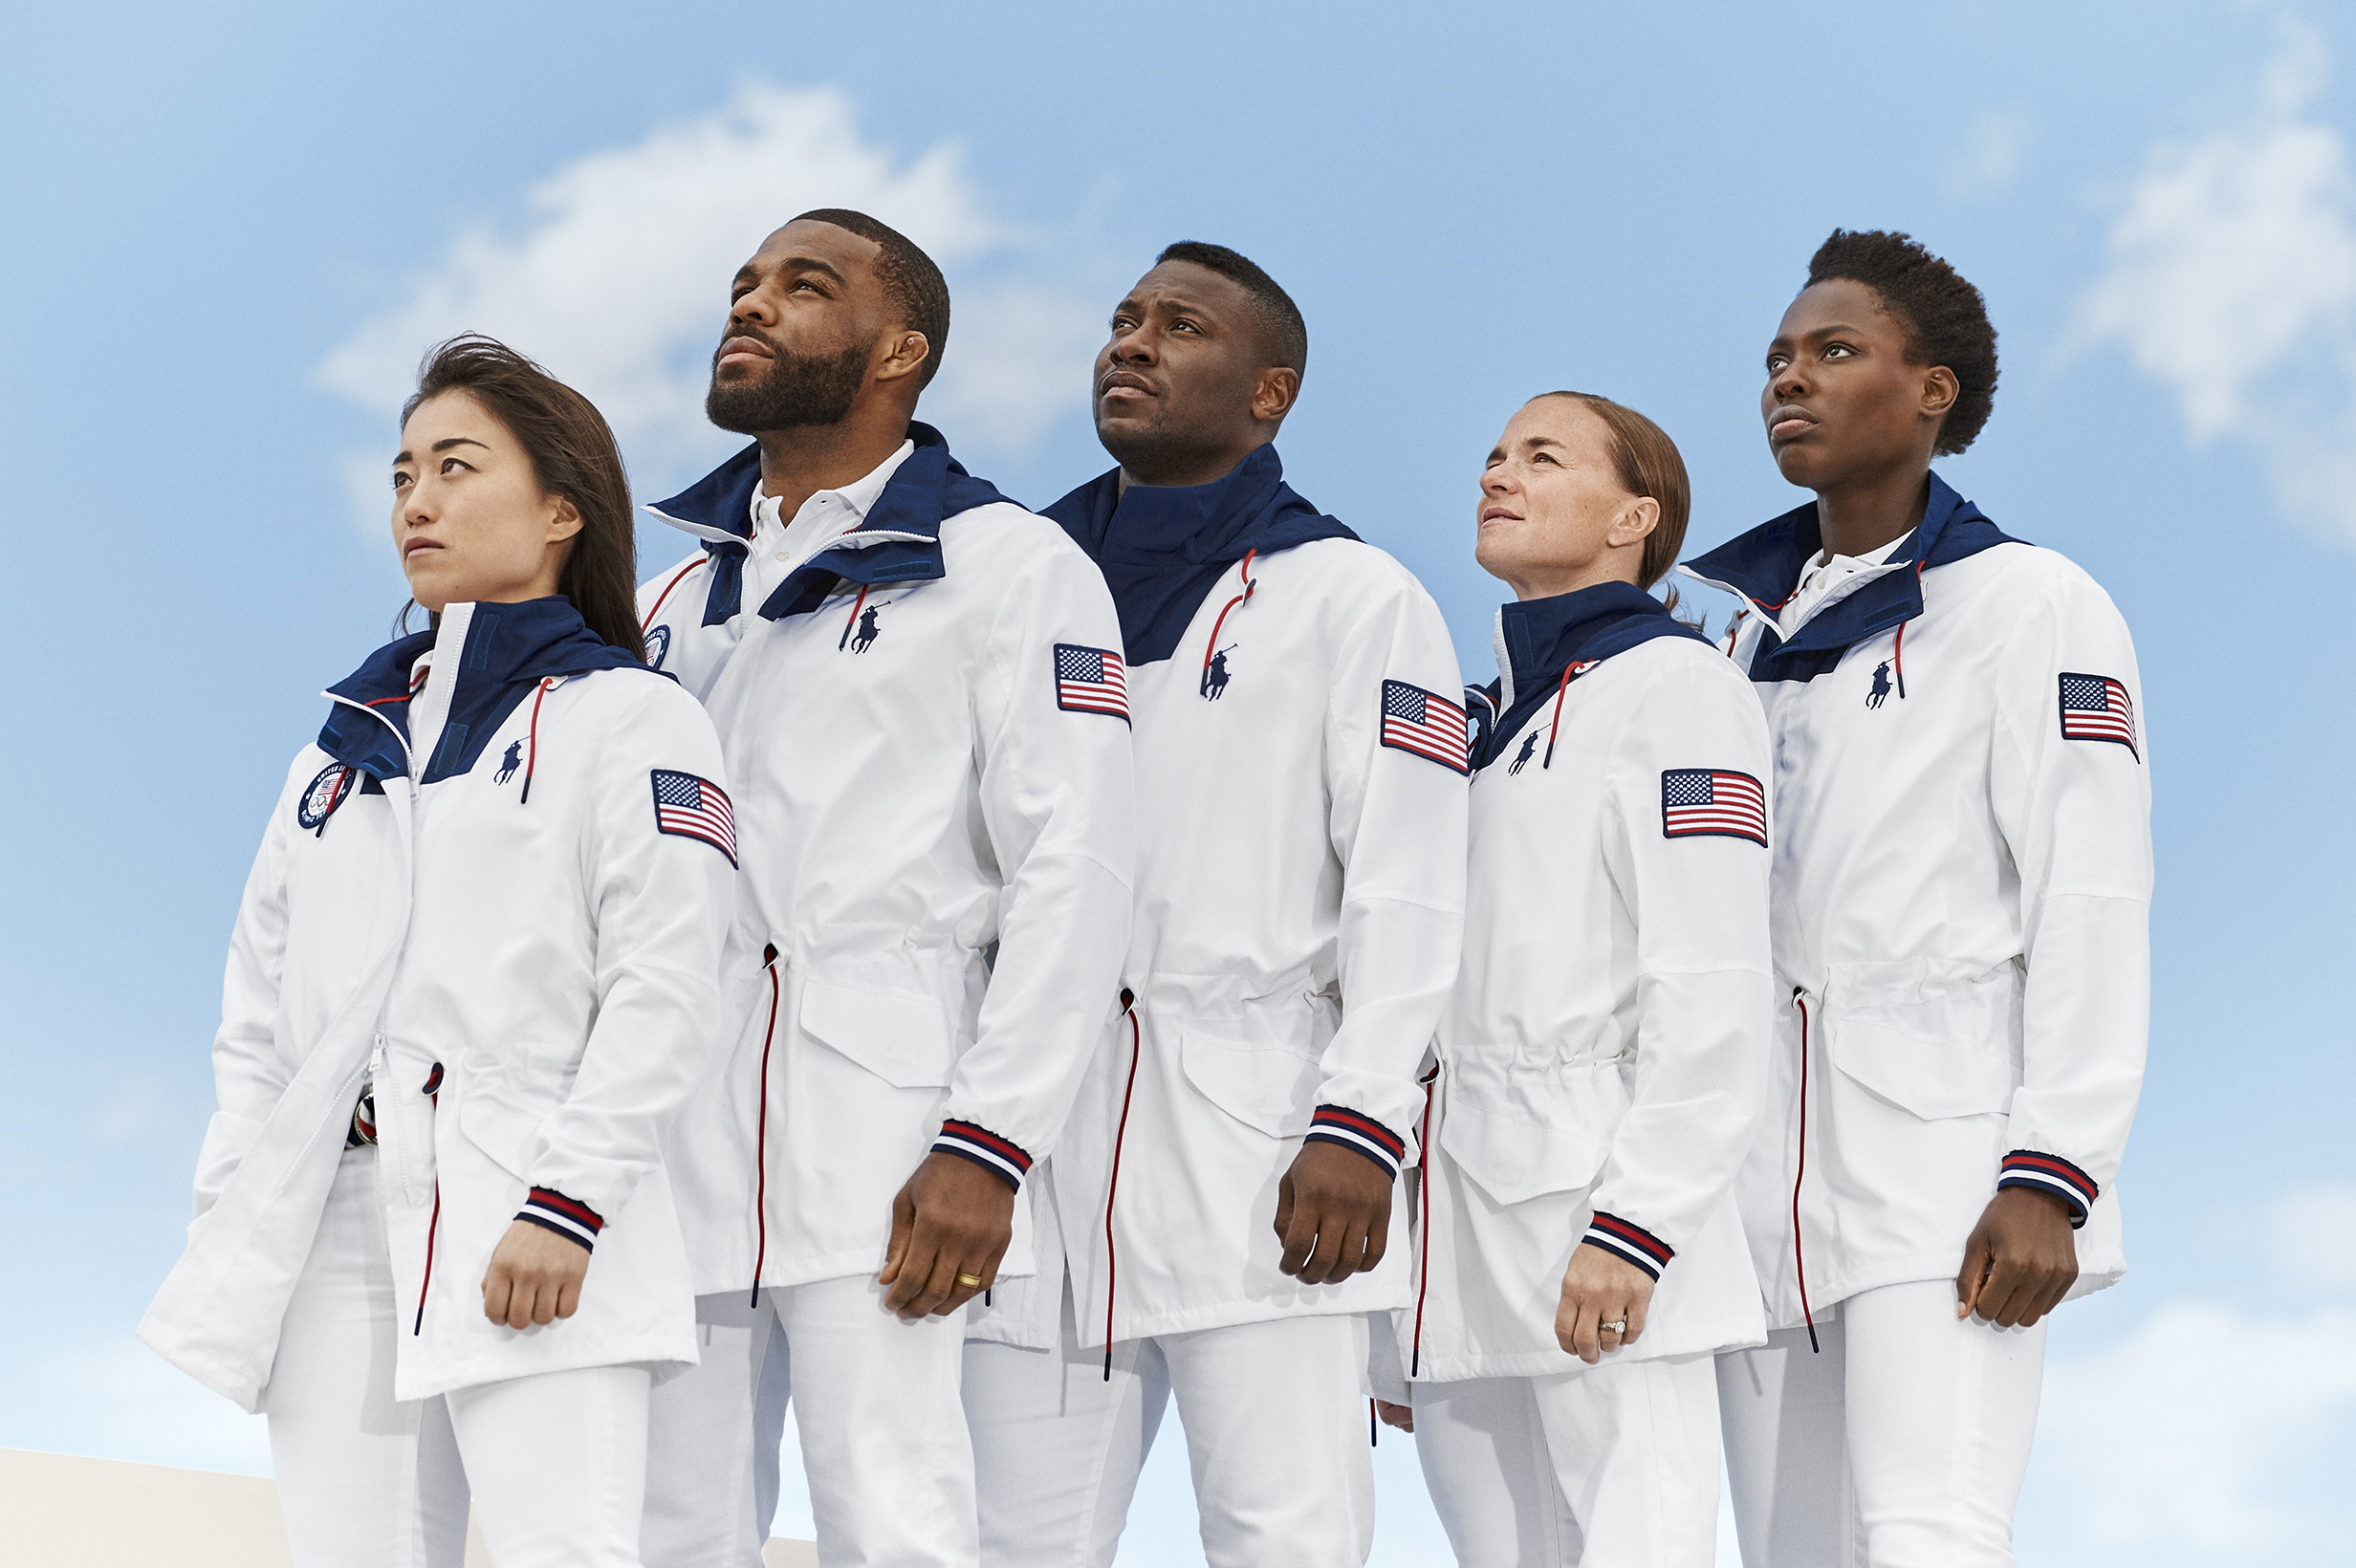 Ralph Lauren's Olympic Closing Ceremony uniforms.